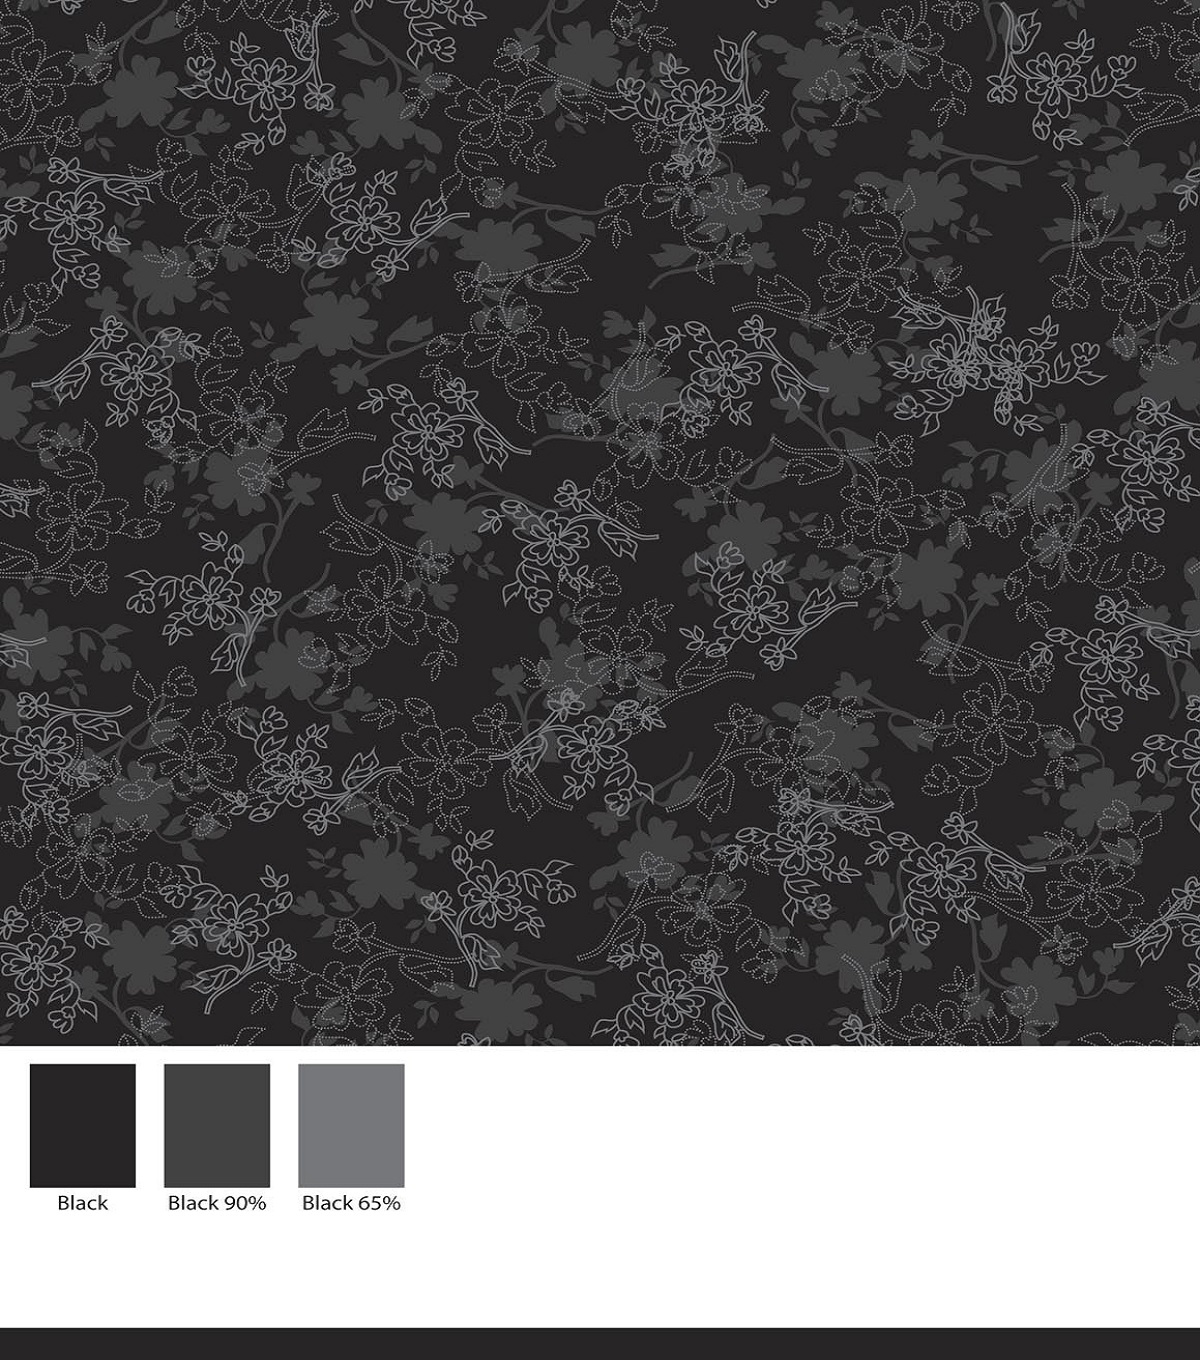 Keepsake Calico Cotton Fabric -Floral On Black